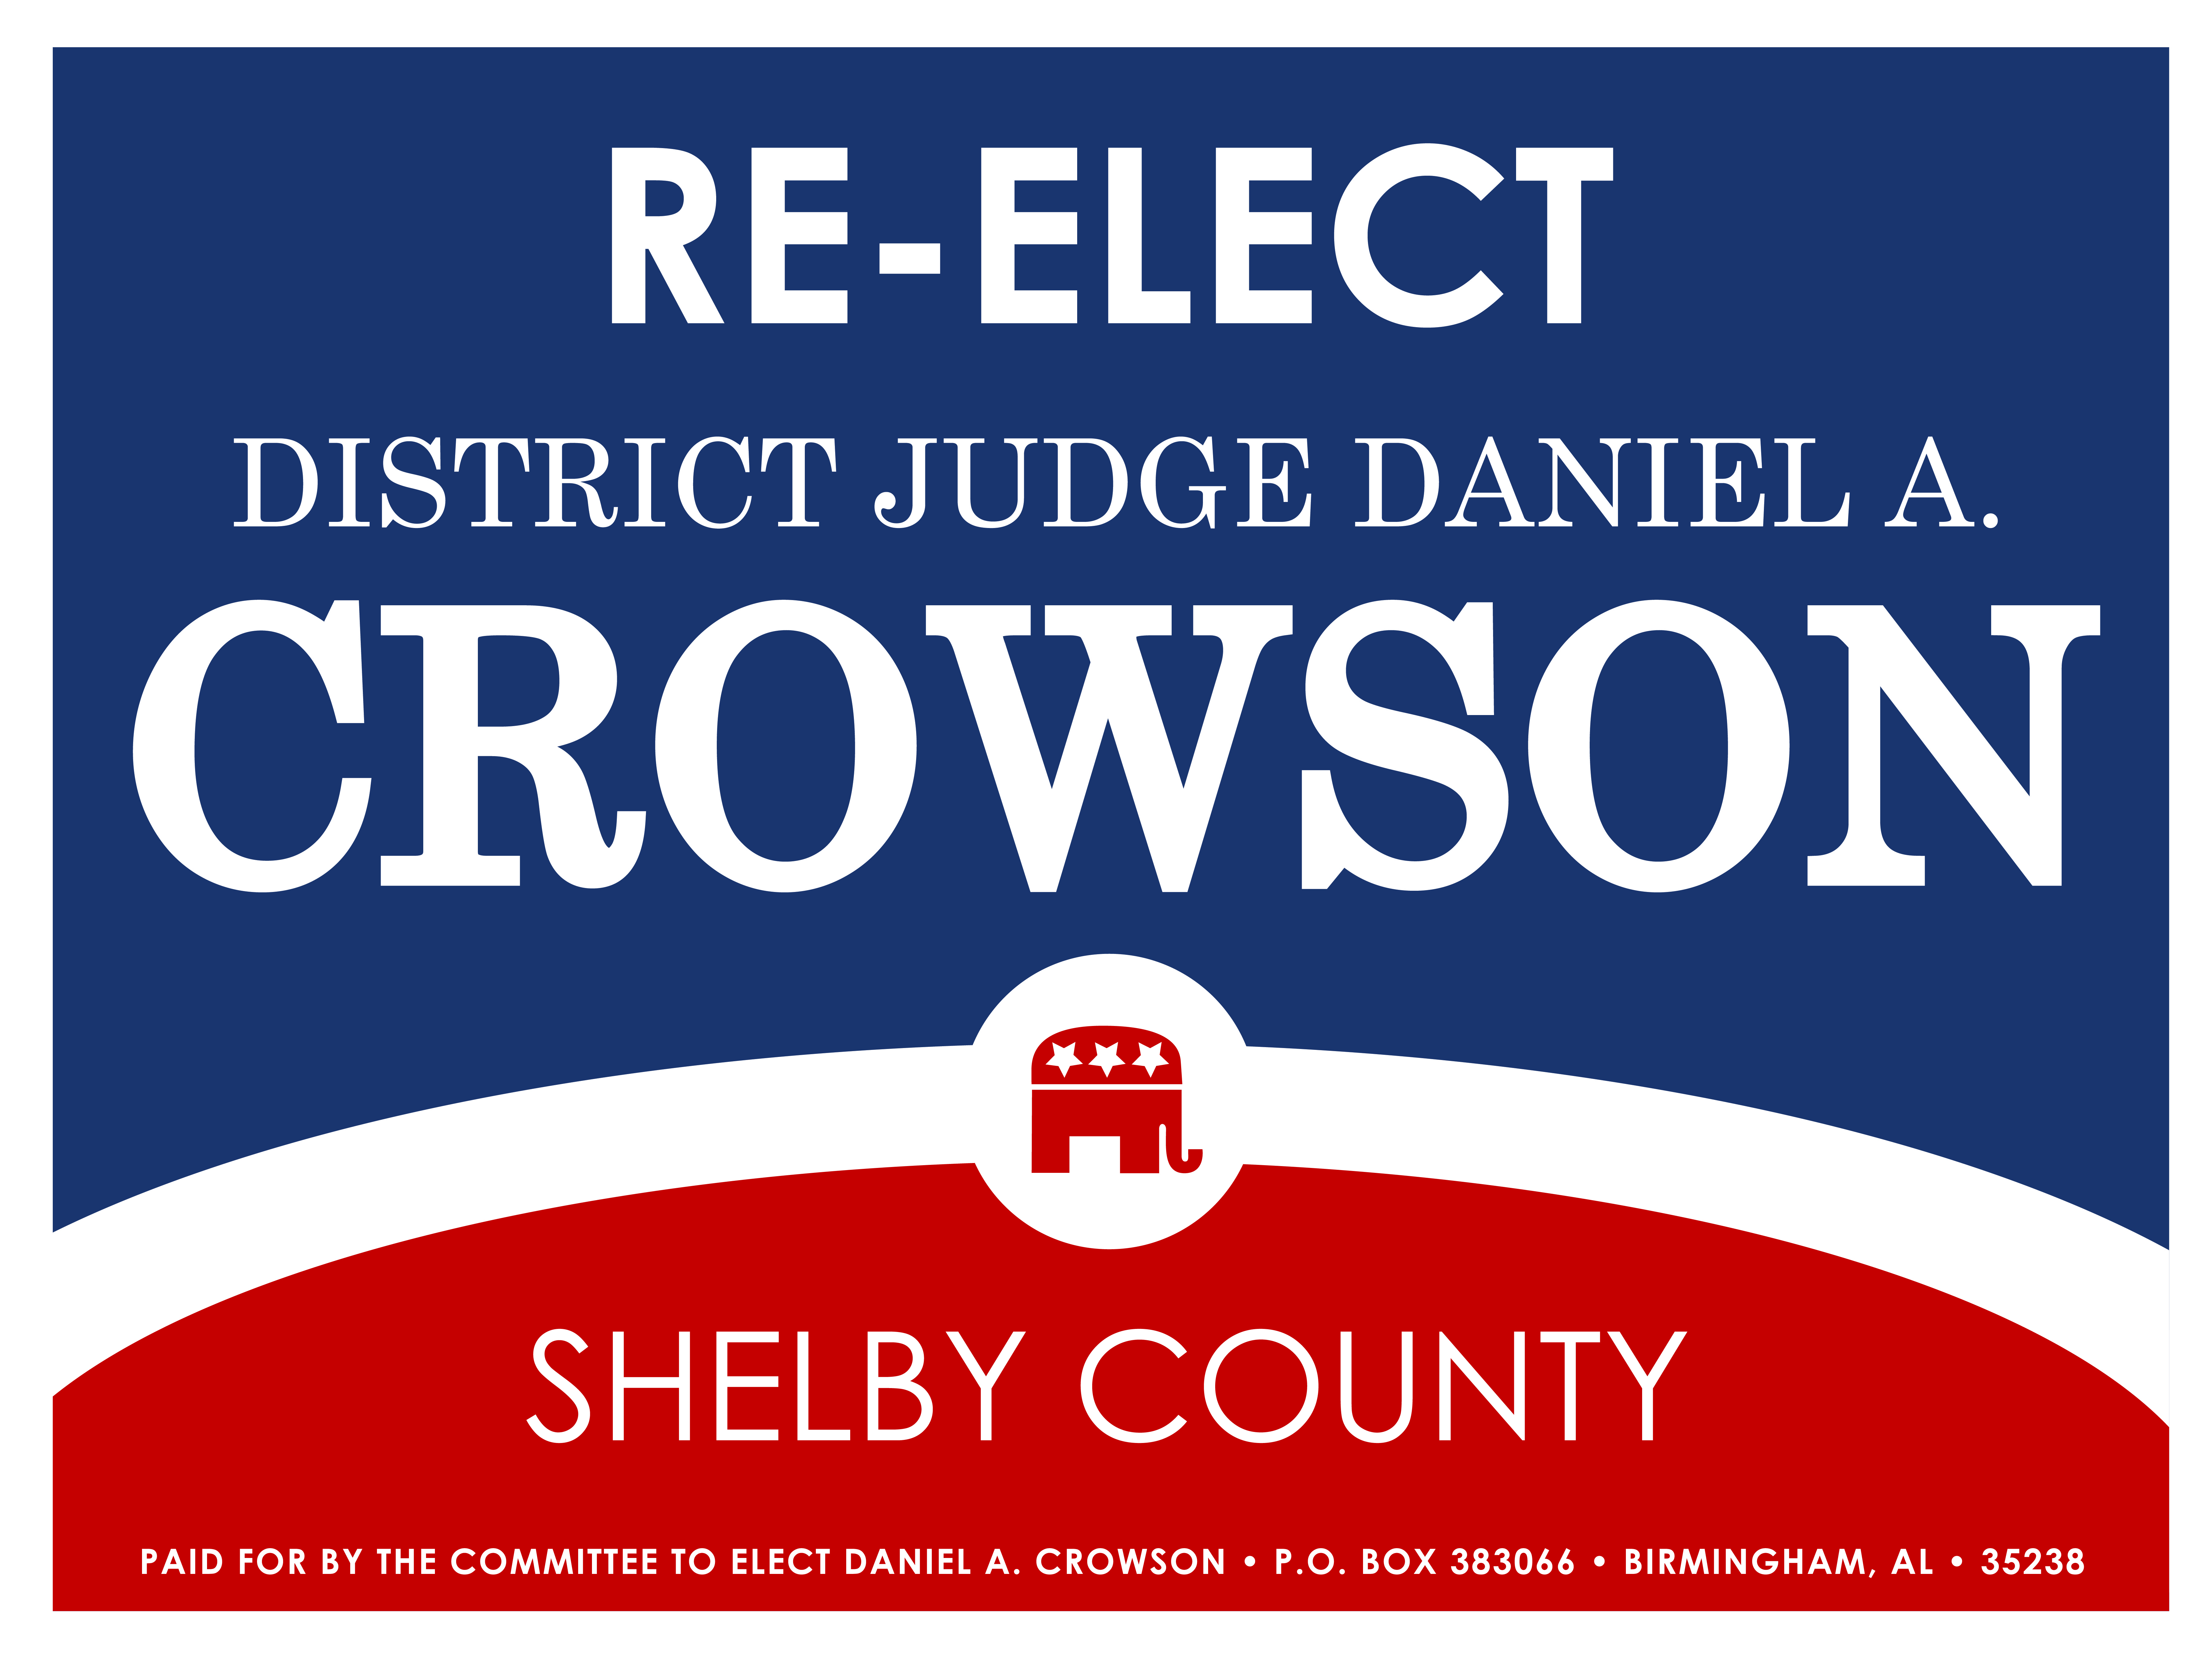 Committee to Re-Elect Daniel A. Crowson